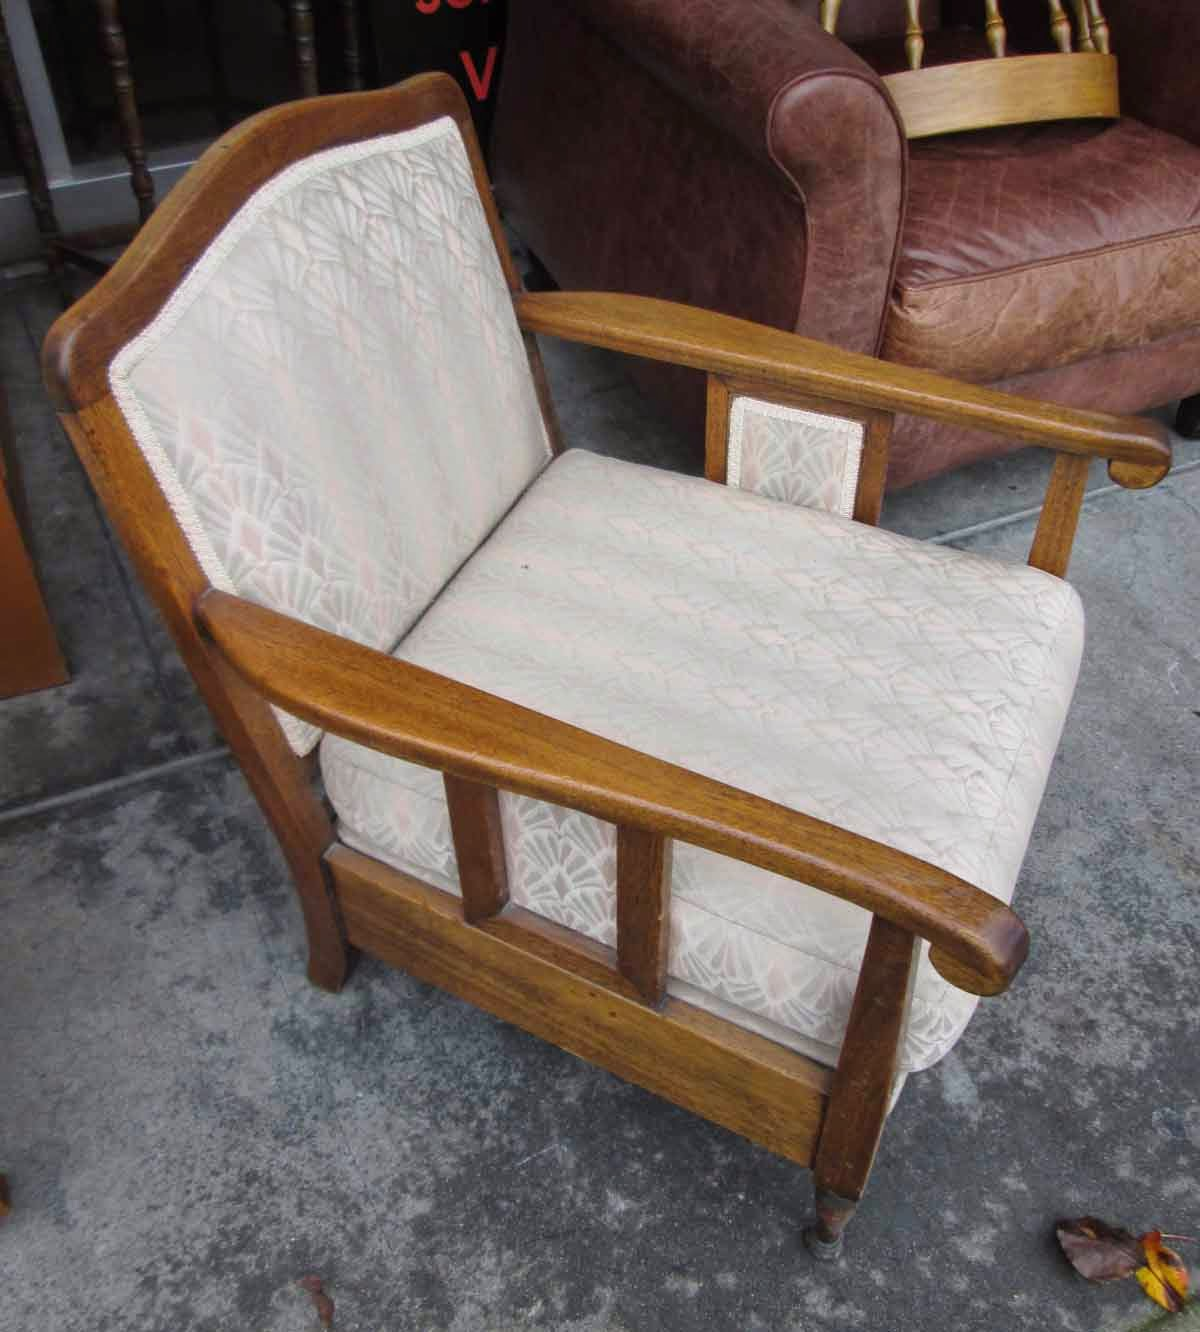 UHURU FURNITURE & COLLECTIBLES: SOLD Arm Chair with Wood ...